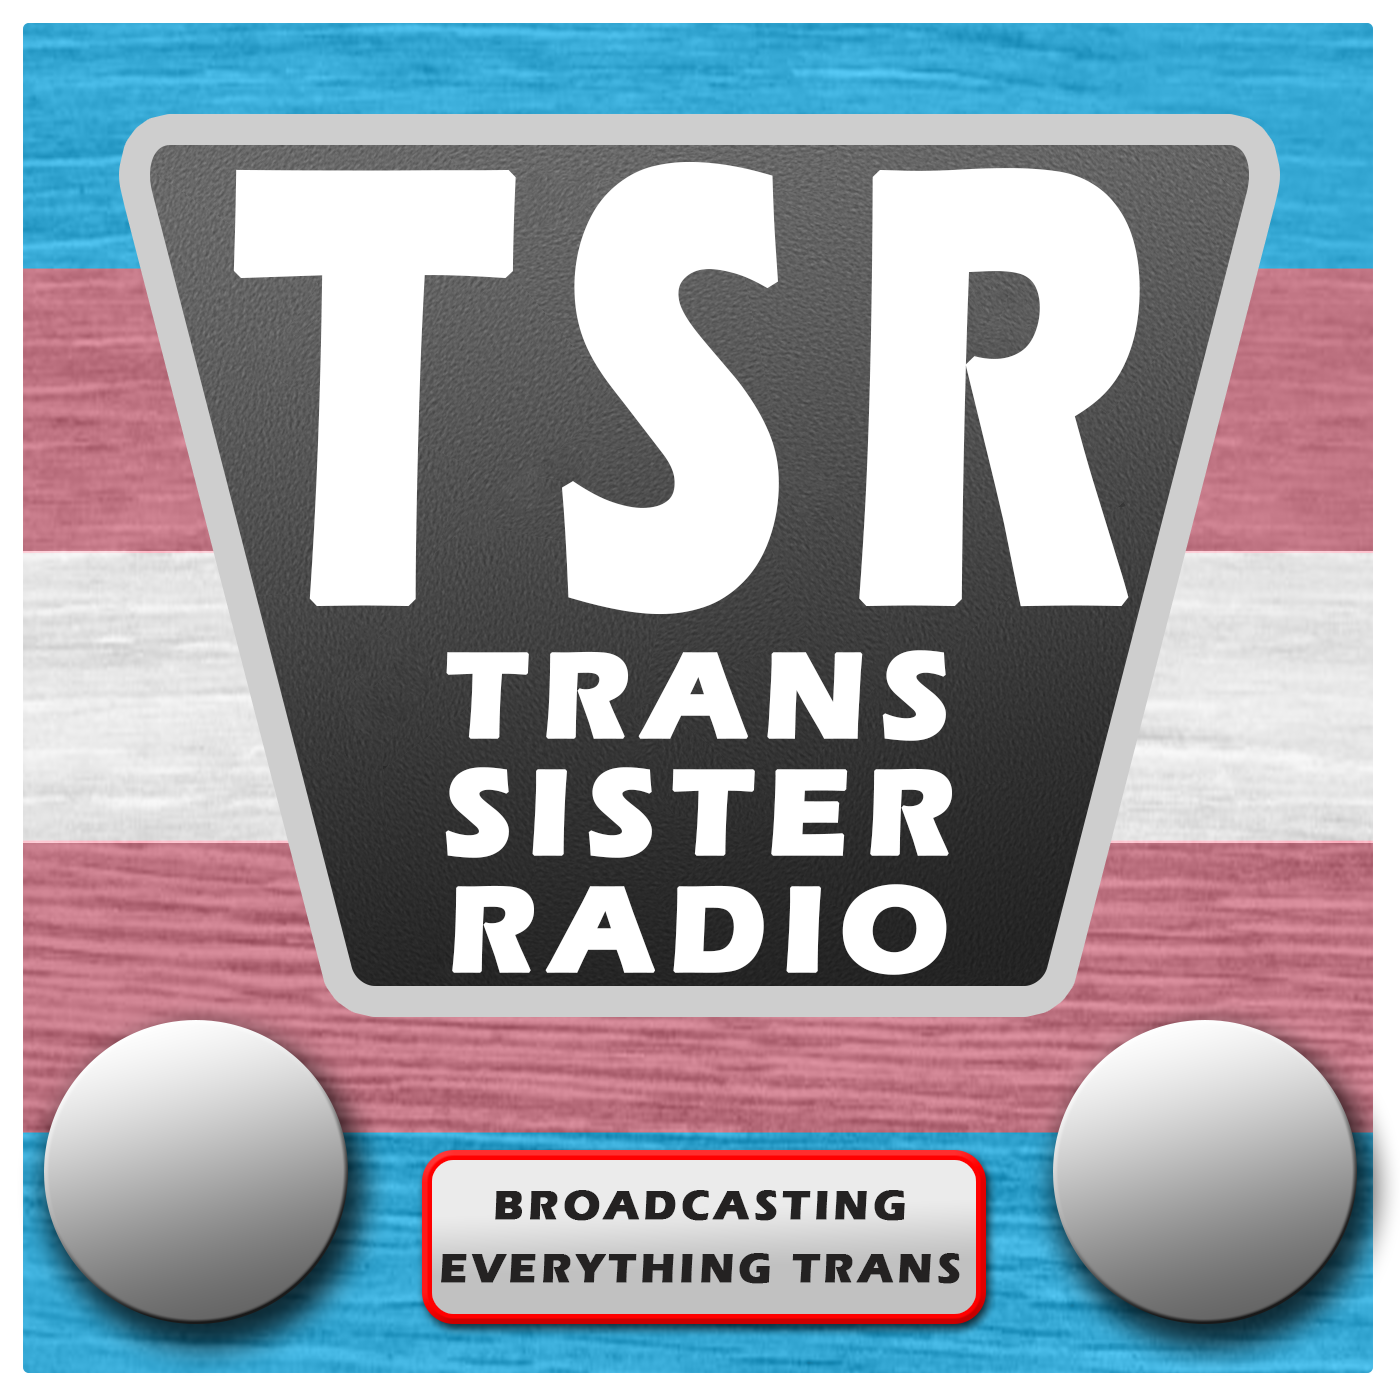 Trans Sister Radio: Broadcasting Everything Trans - Trans Sister Radio: Broadcasting Everything Trans is a podcast that explores the real-life stories of two trans women, Athena and Erin. Every week, they give advice based on their experiences and cover topics and questions they see frequently asked by new and questioning trans folk.